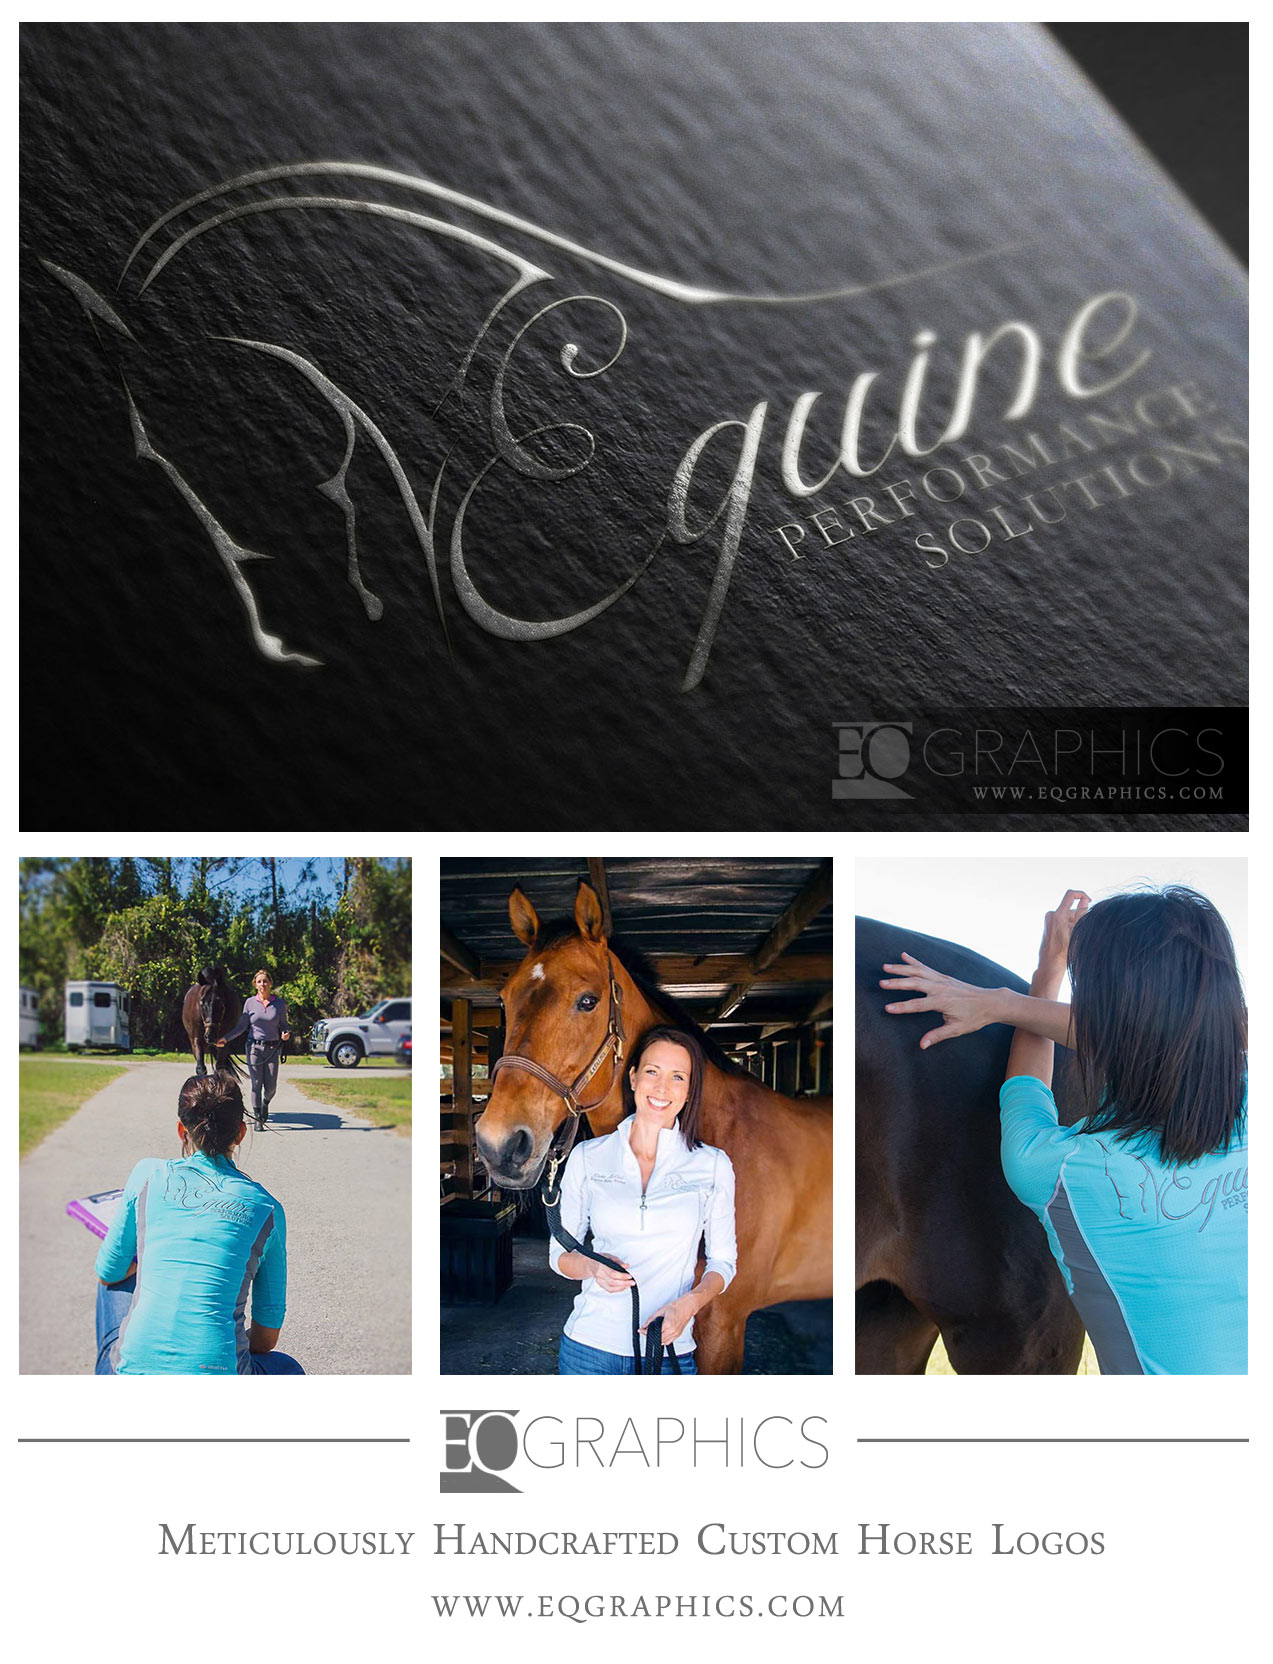 Equine Performance Solutions Custom Hand-Drawn Horse Logo Design by EQ Graphics Equine Logos